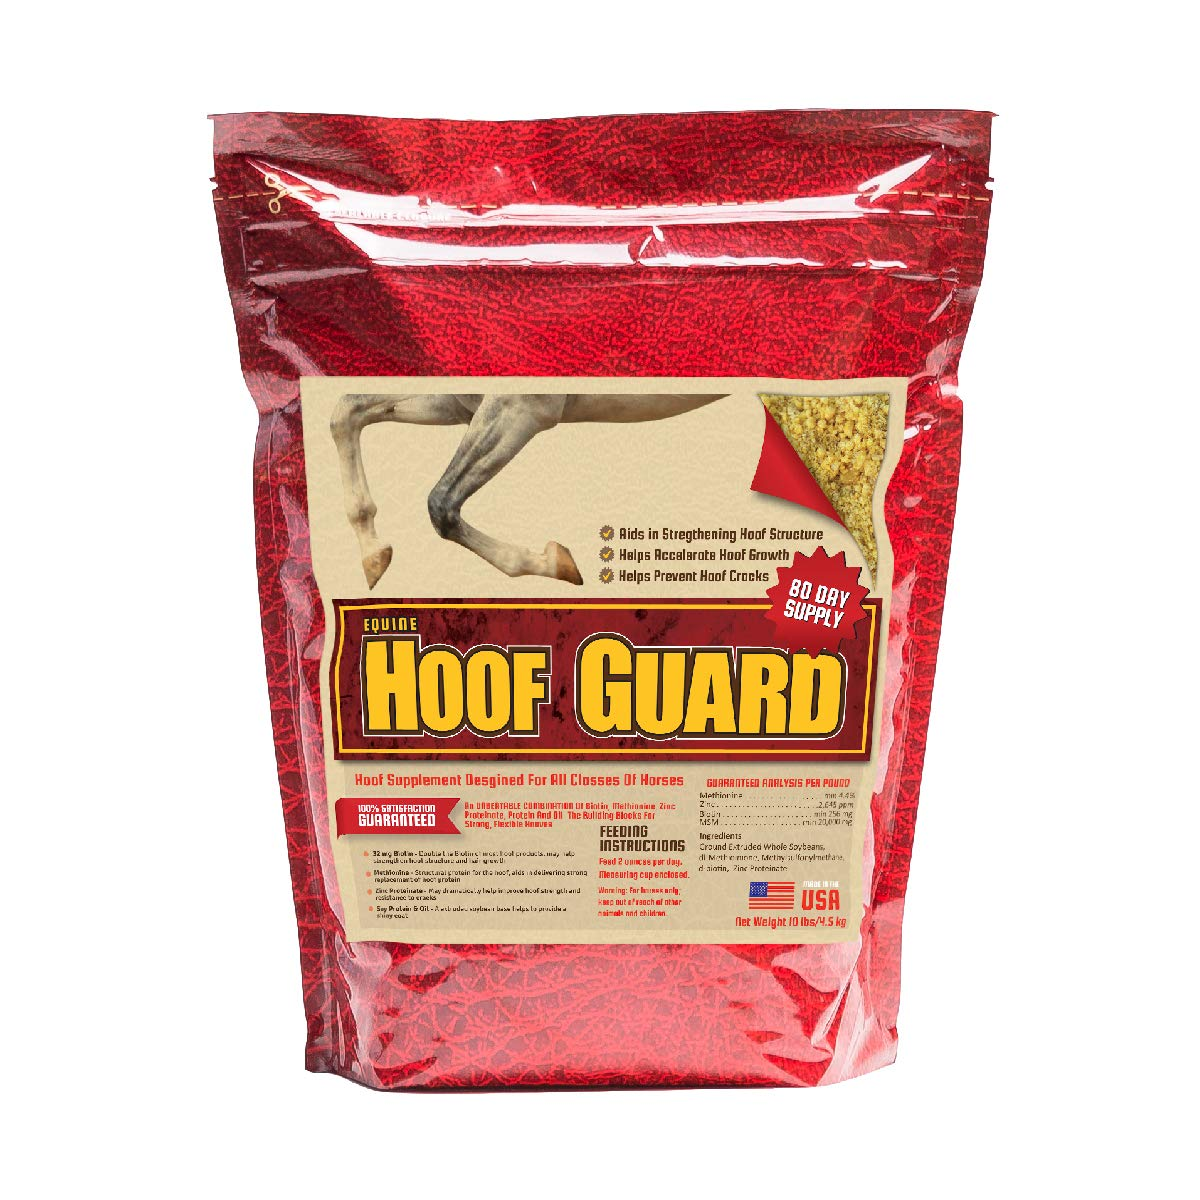 Equine Hoof Guard Concentrated Hoof Supplement For Horses With Biotin, Msm, Methionine And Zinc, 10 lb by Horse Guard